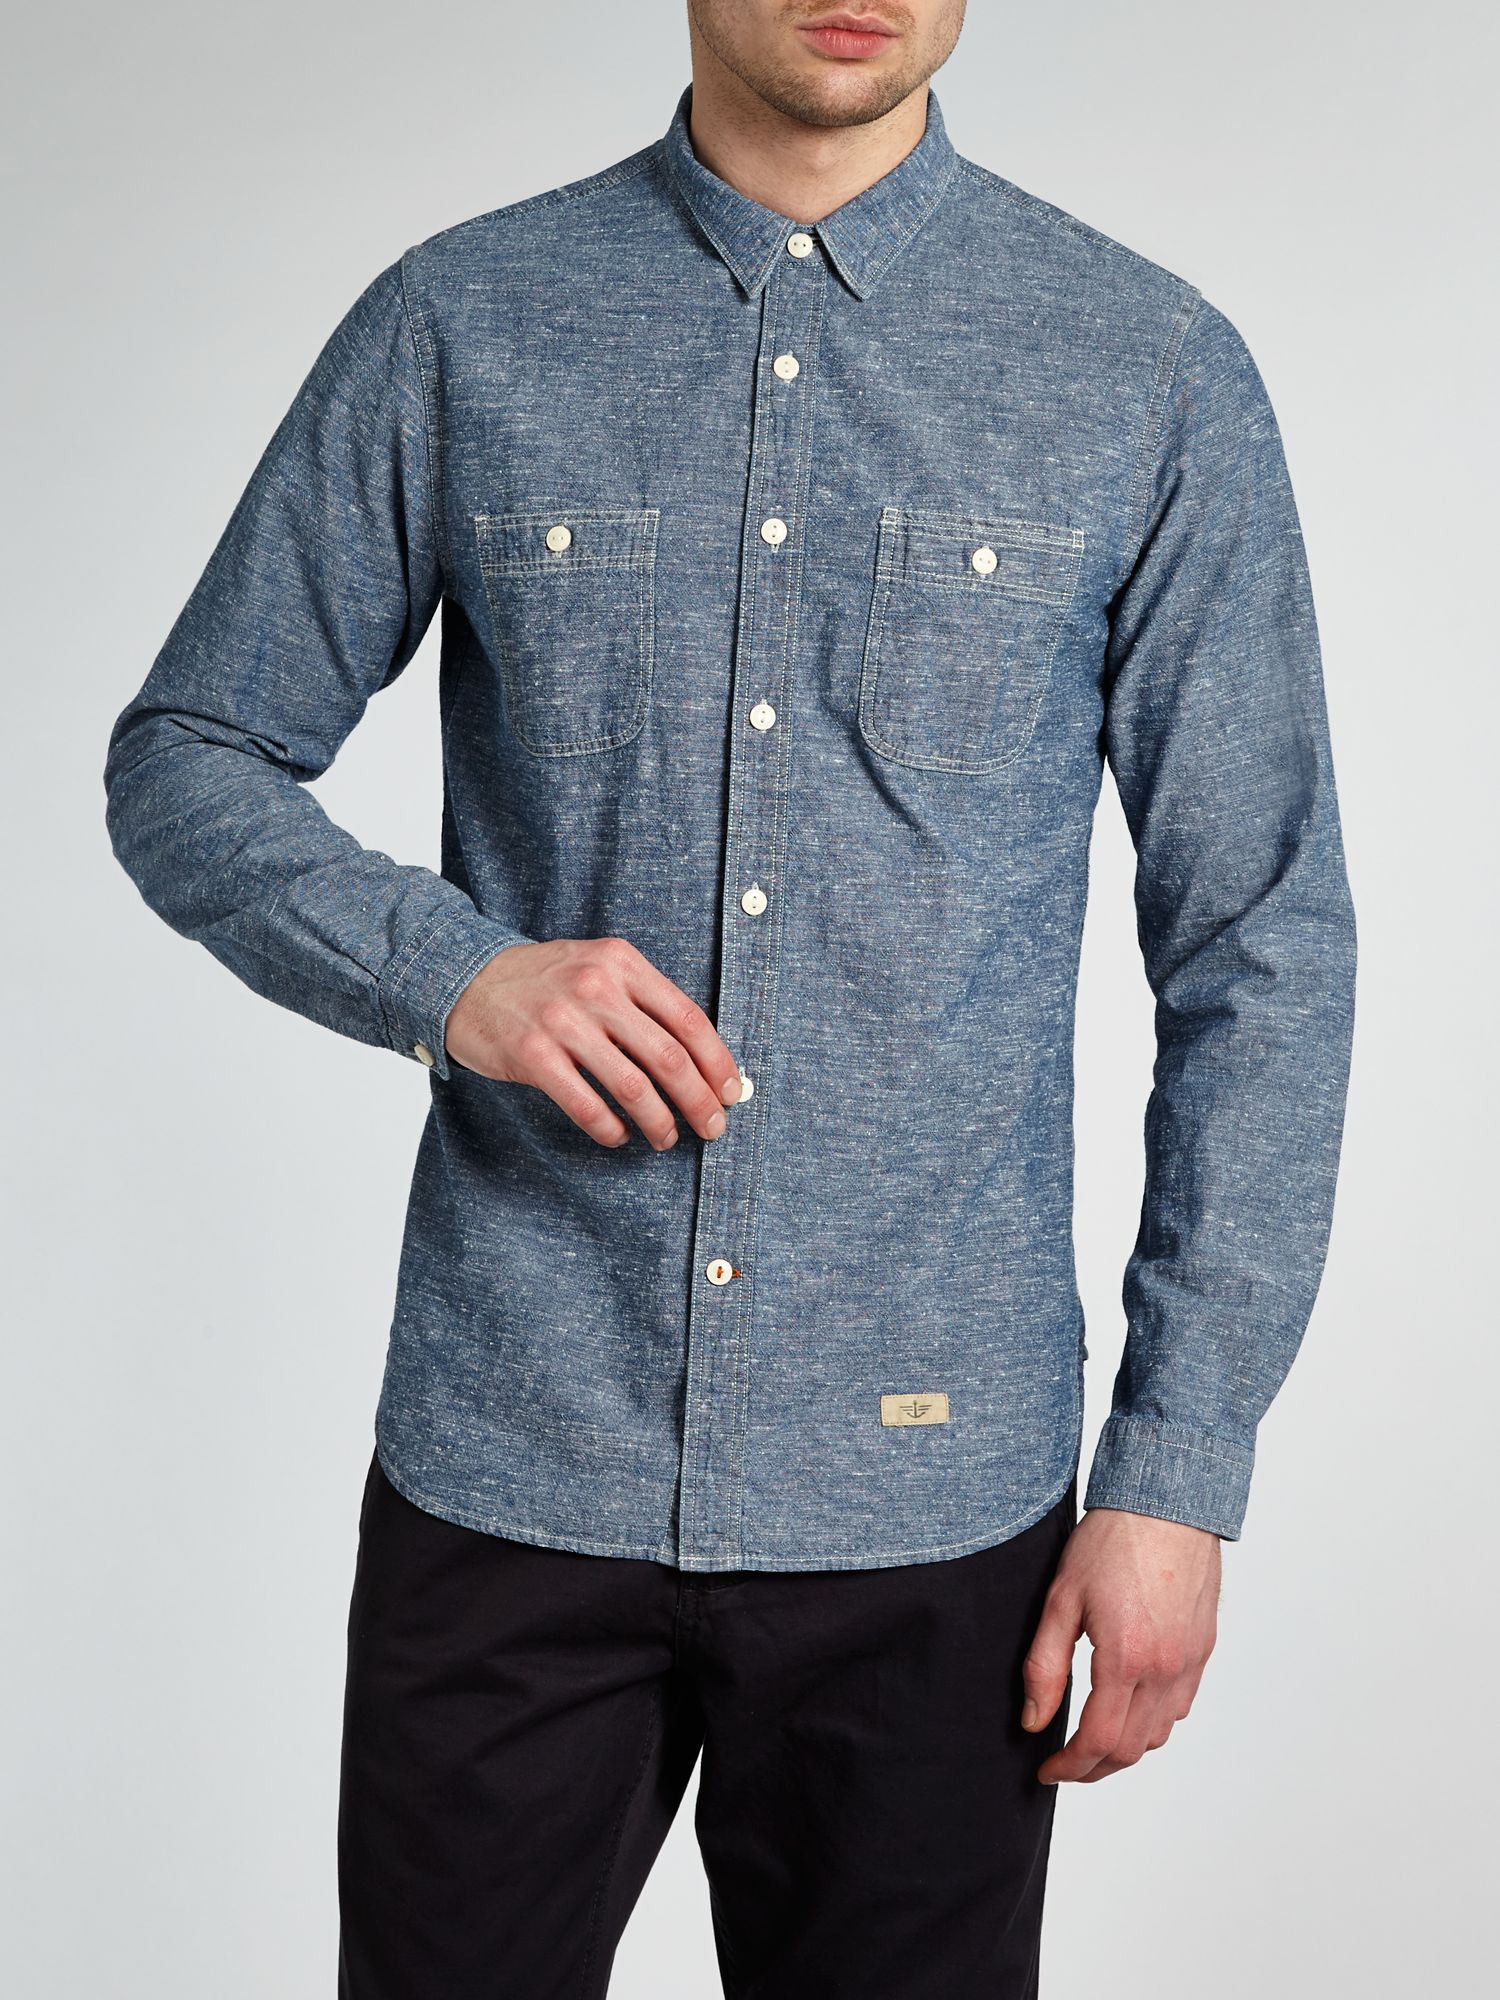 Long sleeved chambray shirt